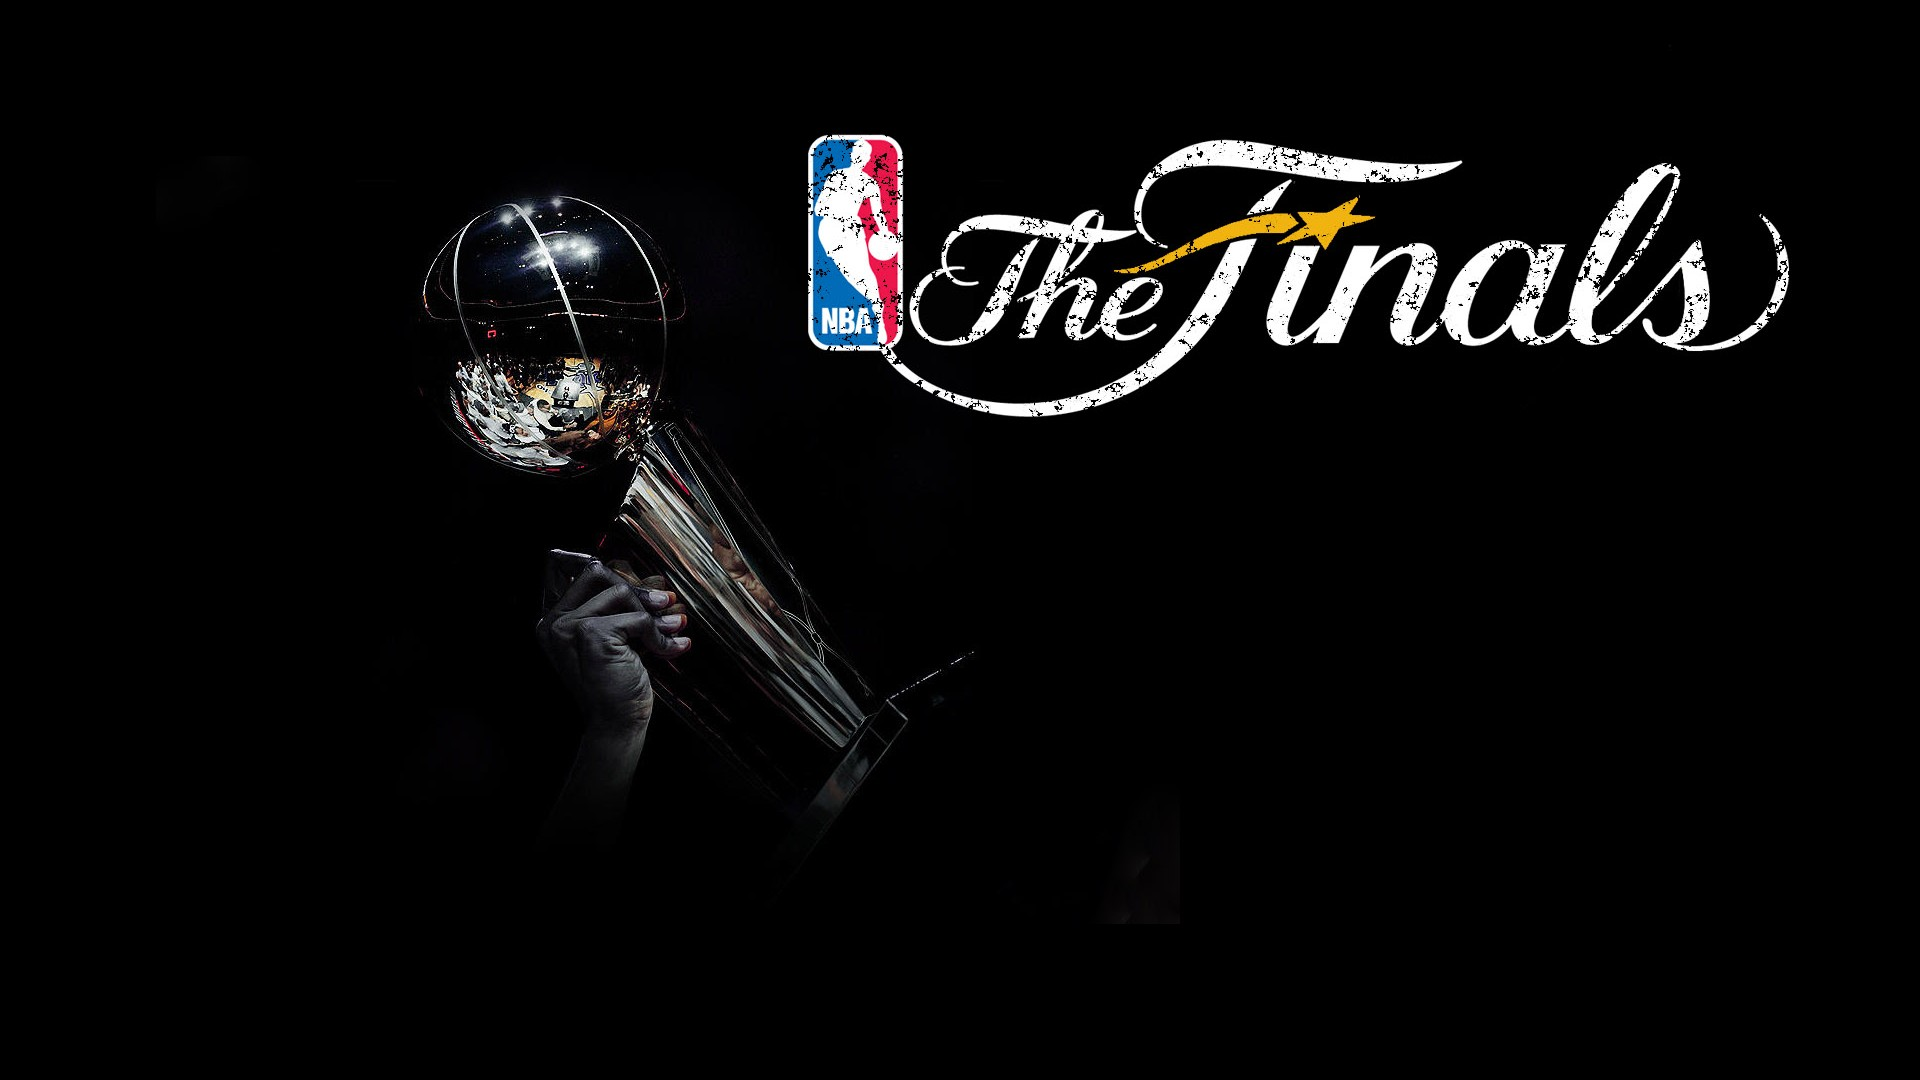 Anything Is Possible - An NBA Finals Poem - #JPLMagazine